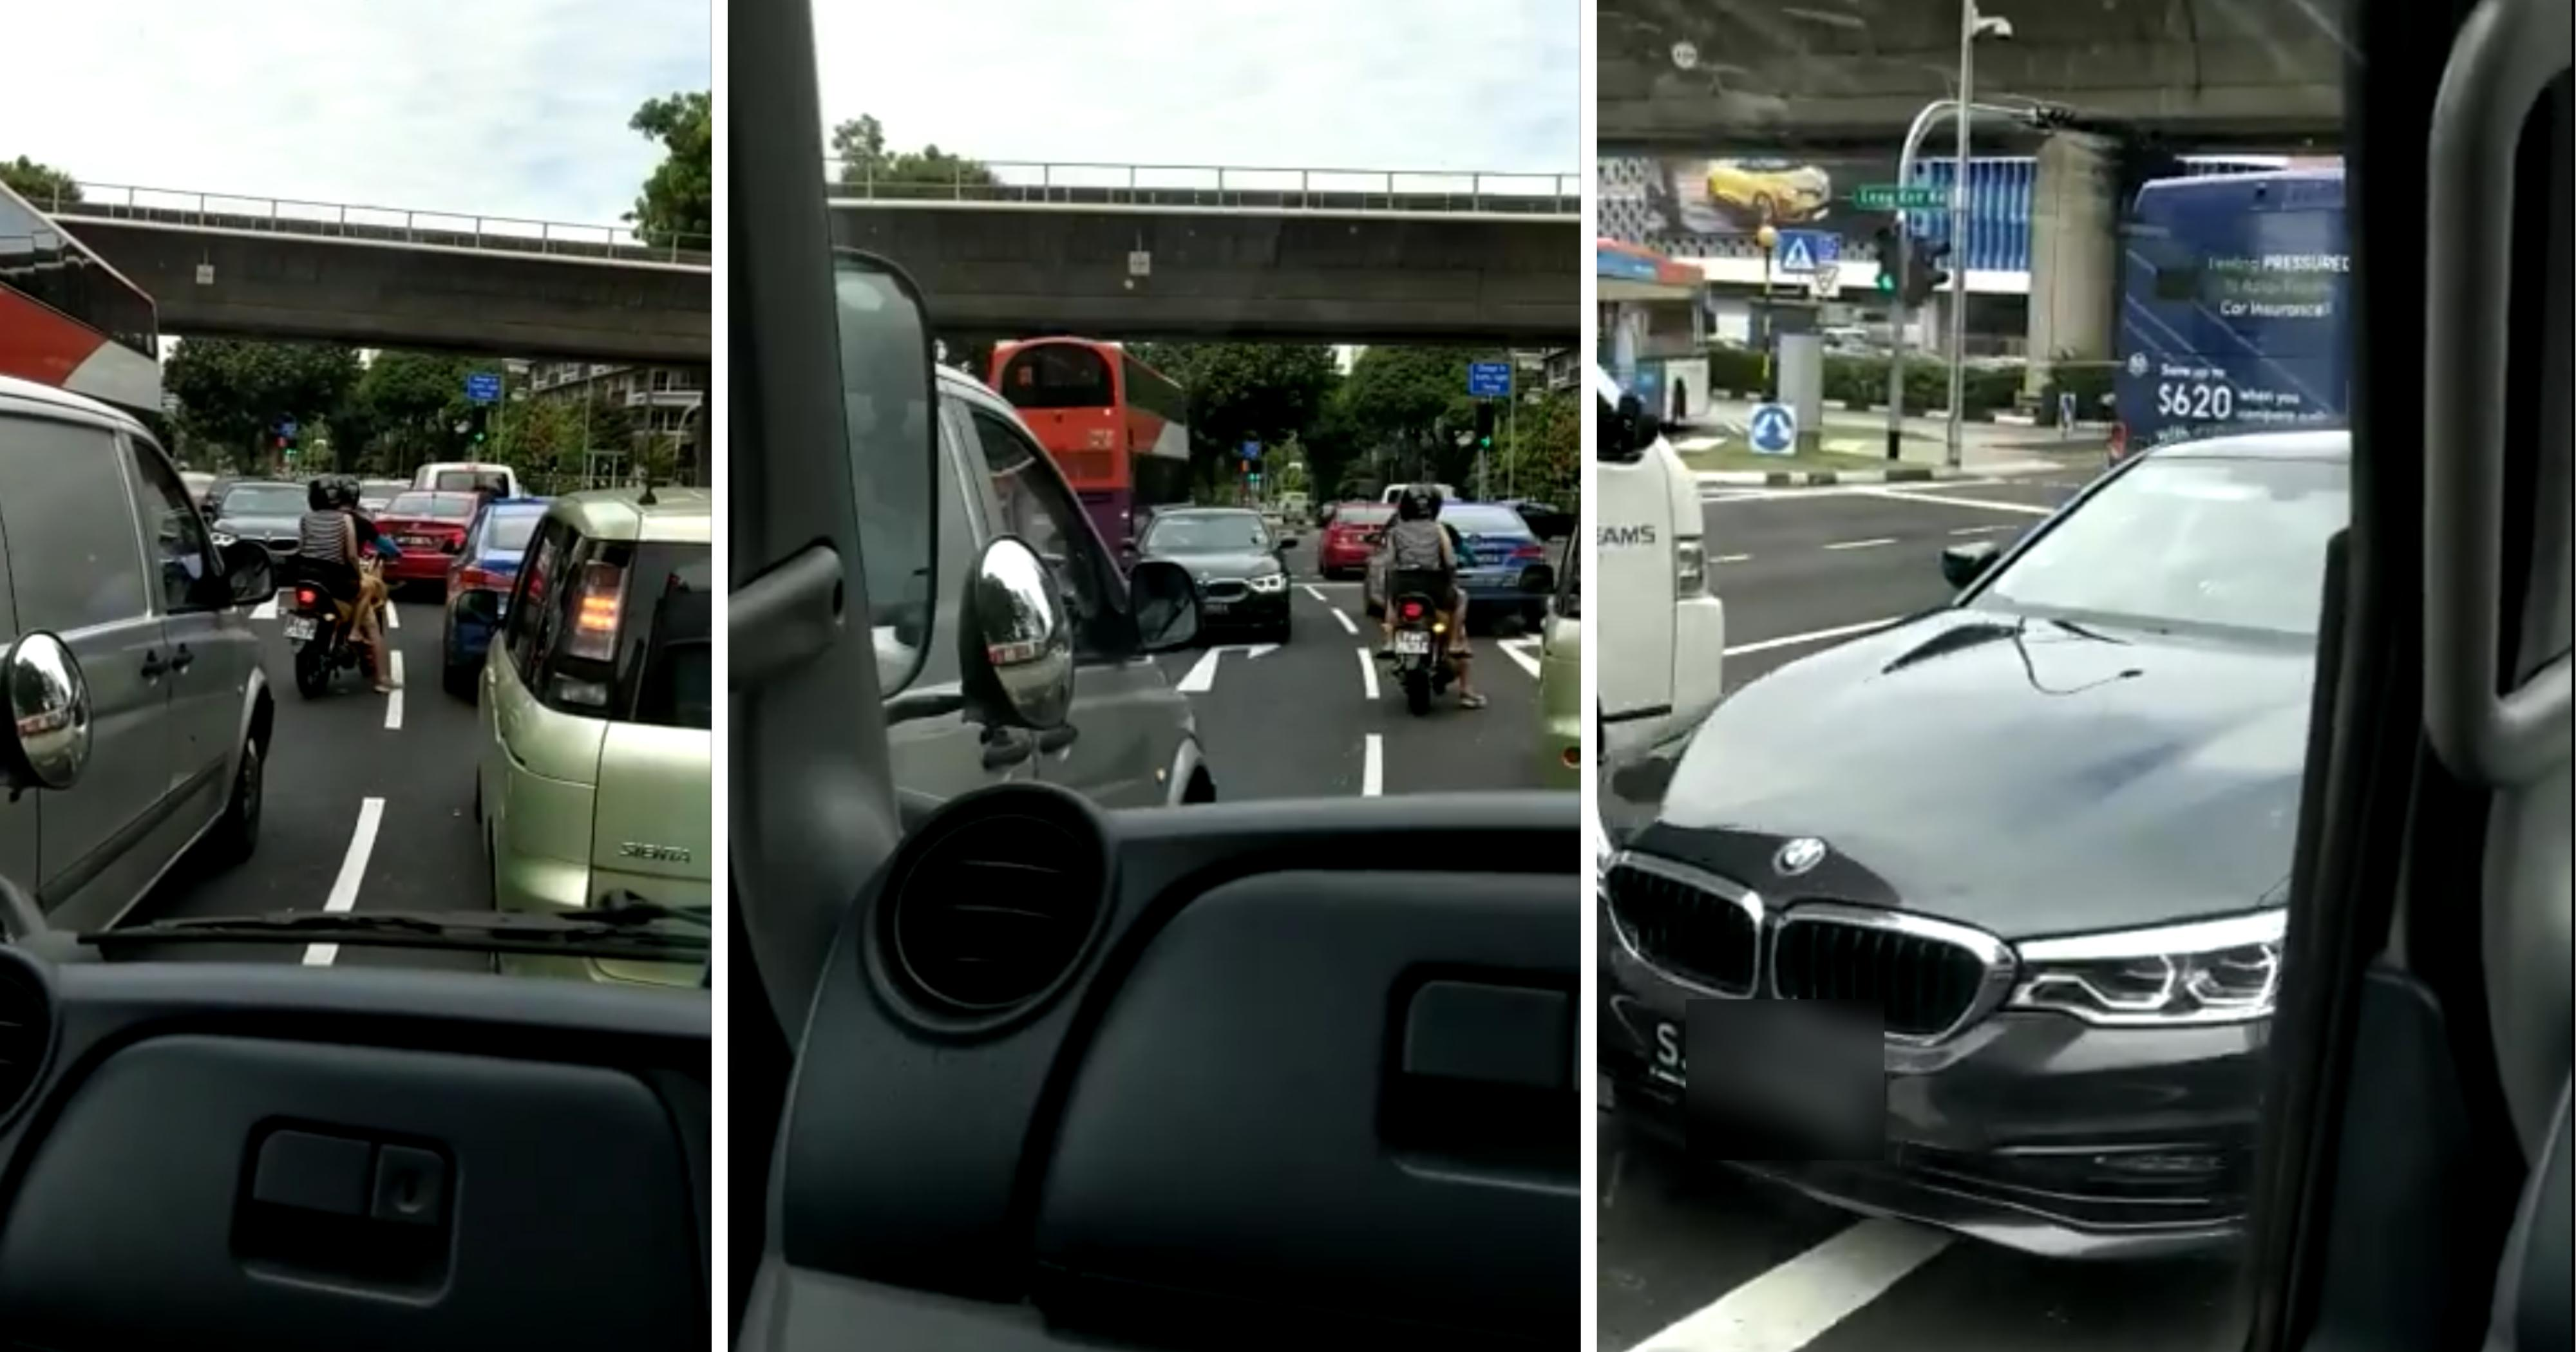 BMW driver drives against traffic, got cursed by others but still calmly driving